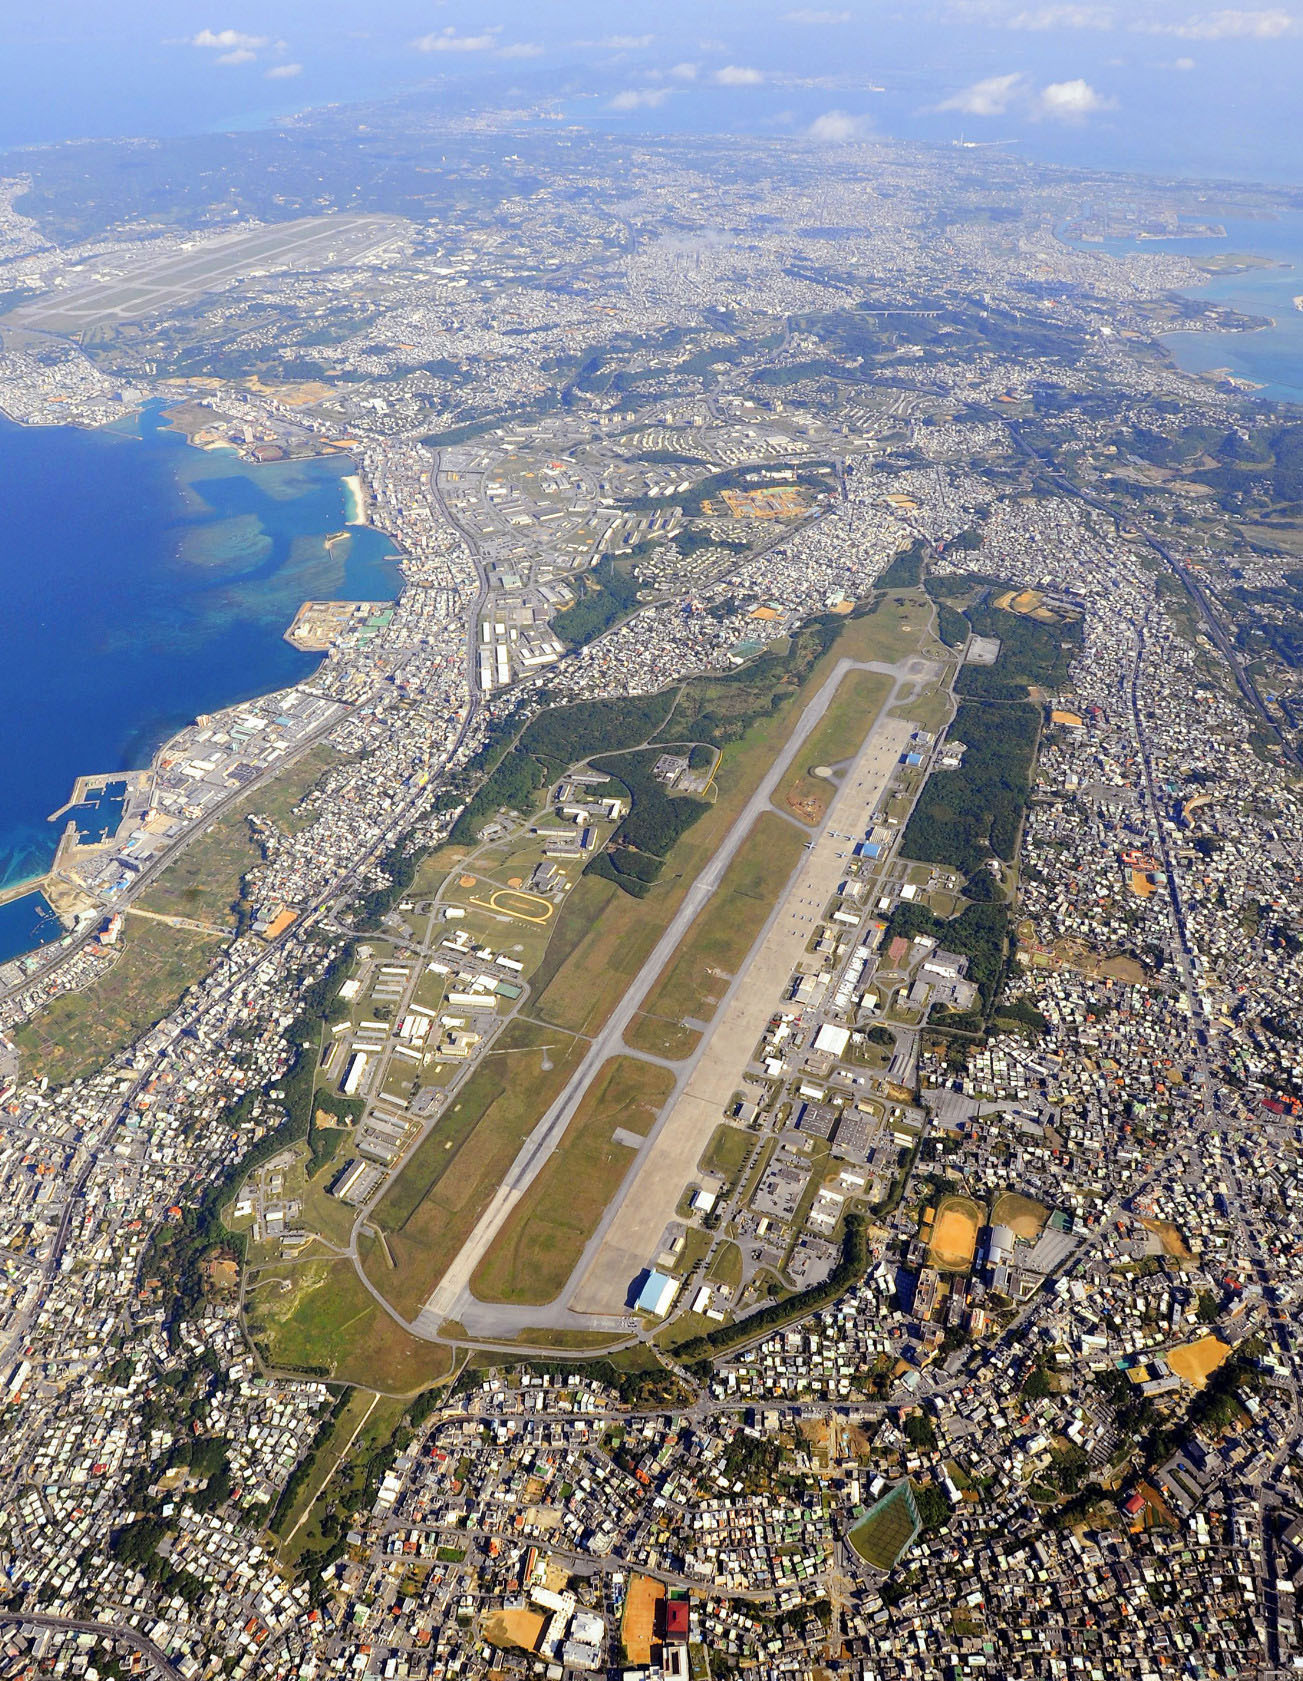 Prime target:  The U.S. forces Futenma air base in Okinawa. | KYODO